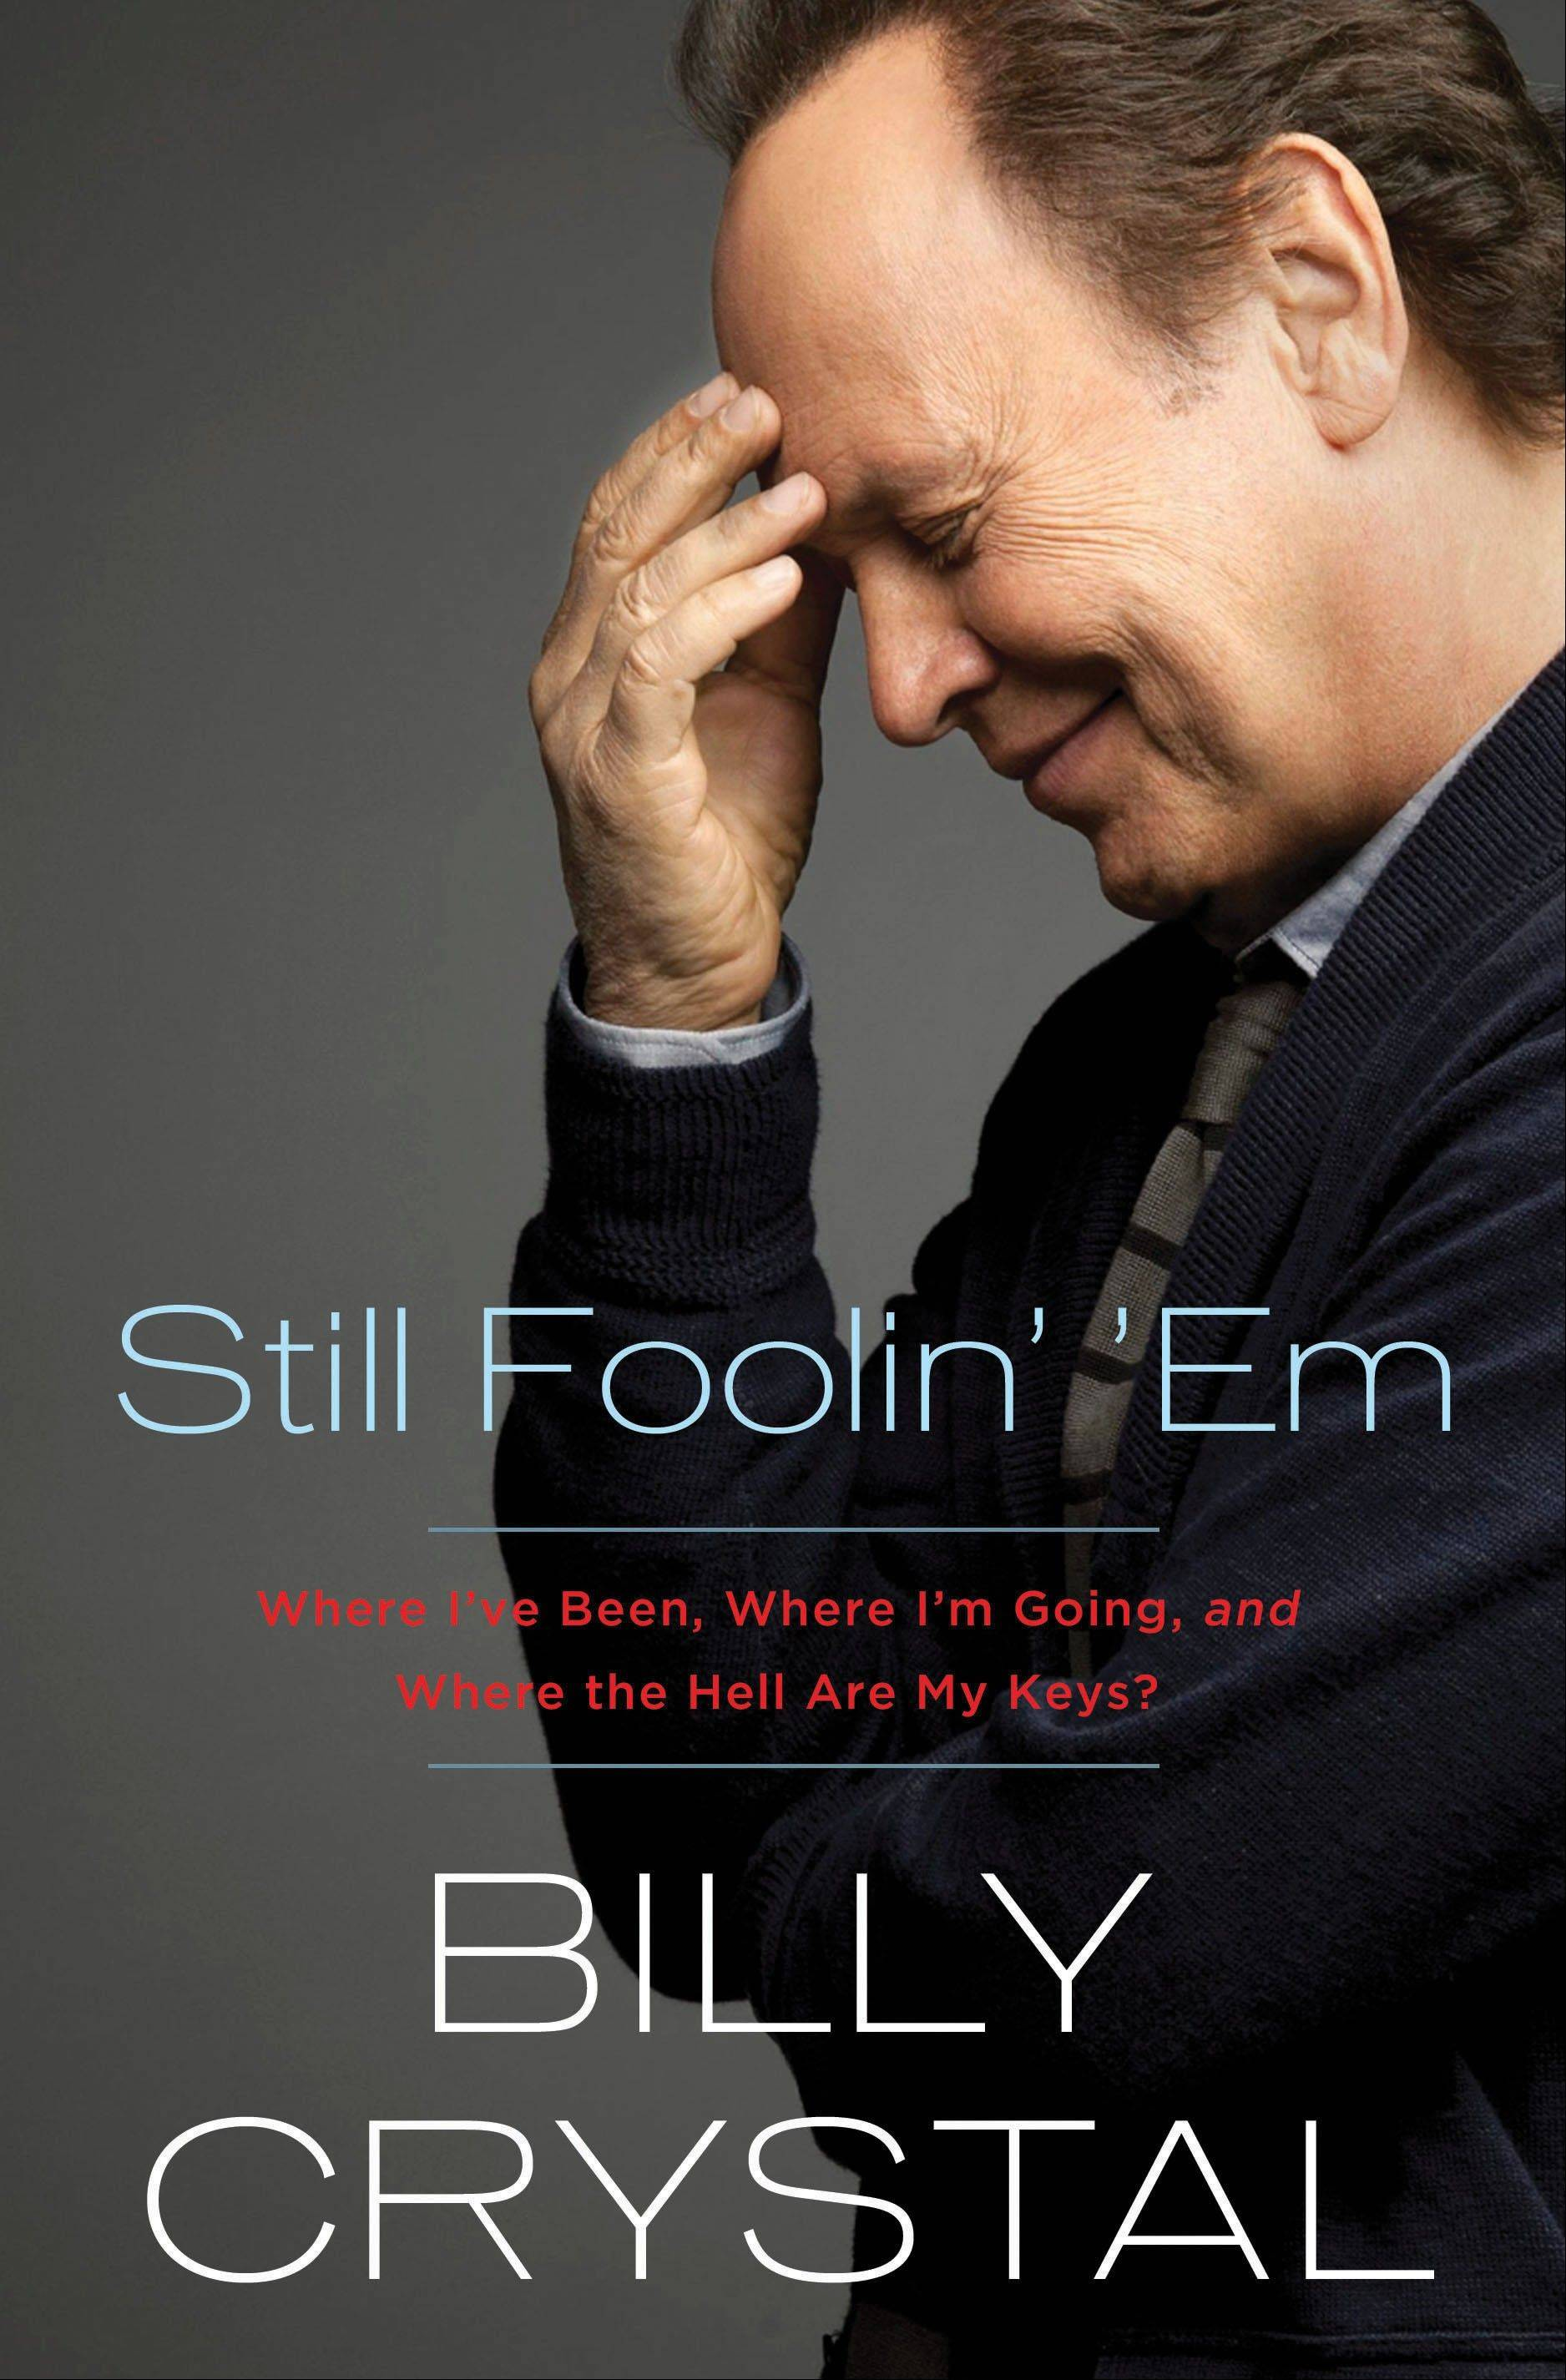 """Still Foolin' 'Em: Where I've Been, Where I'm Going, and Where the Hell Are My Keys?"" by Billy Crystal"